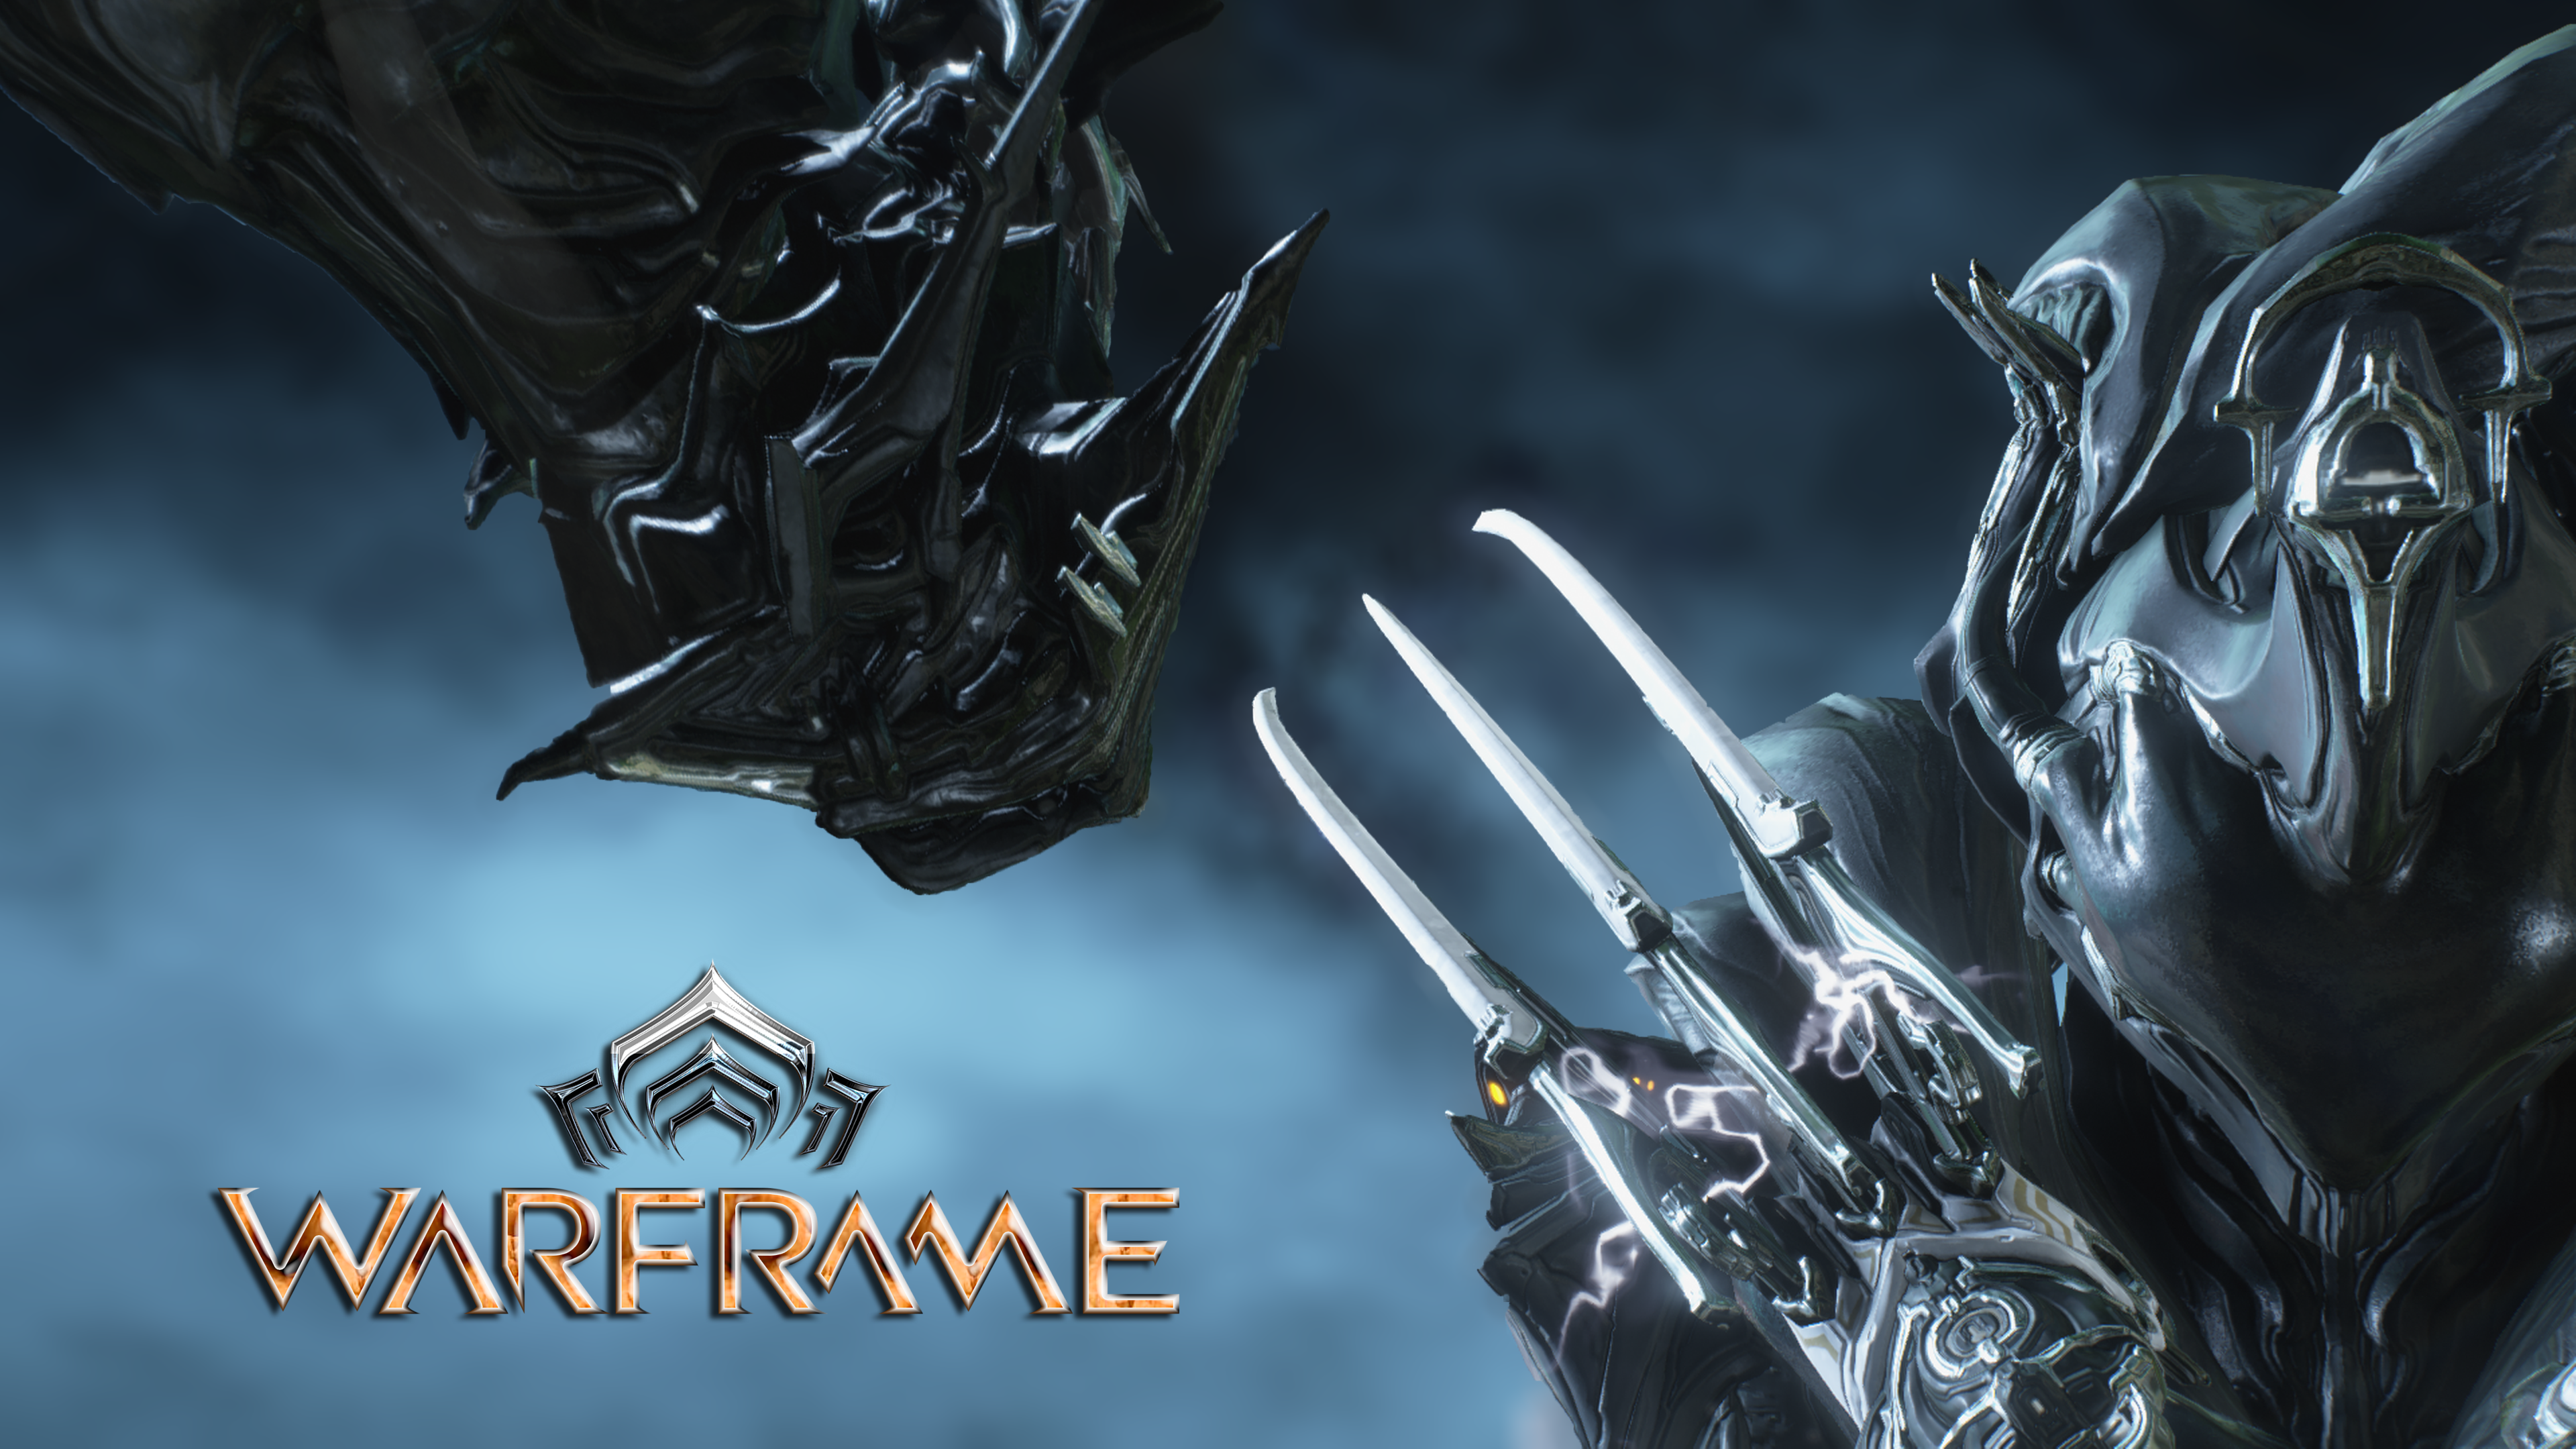 Nekros Vs Saryn 4k Ultra Hd Wallpaper Background Image 3840x2160 Id 1072724 Wallpaper Abyss Hello /r/warframe, i'm a warframe player and i've been recently starting to get into the hang of the ember and valkyr wallpapers were made prior to 1 month before the next ones were made. nekros vs saryn 4k ultra hd wallpaper